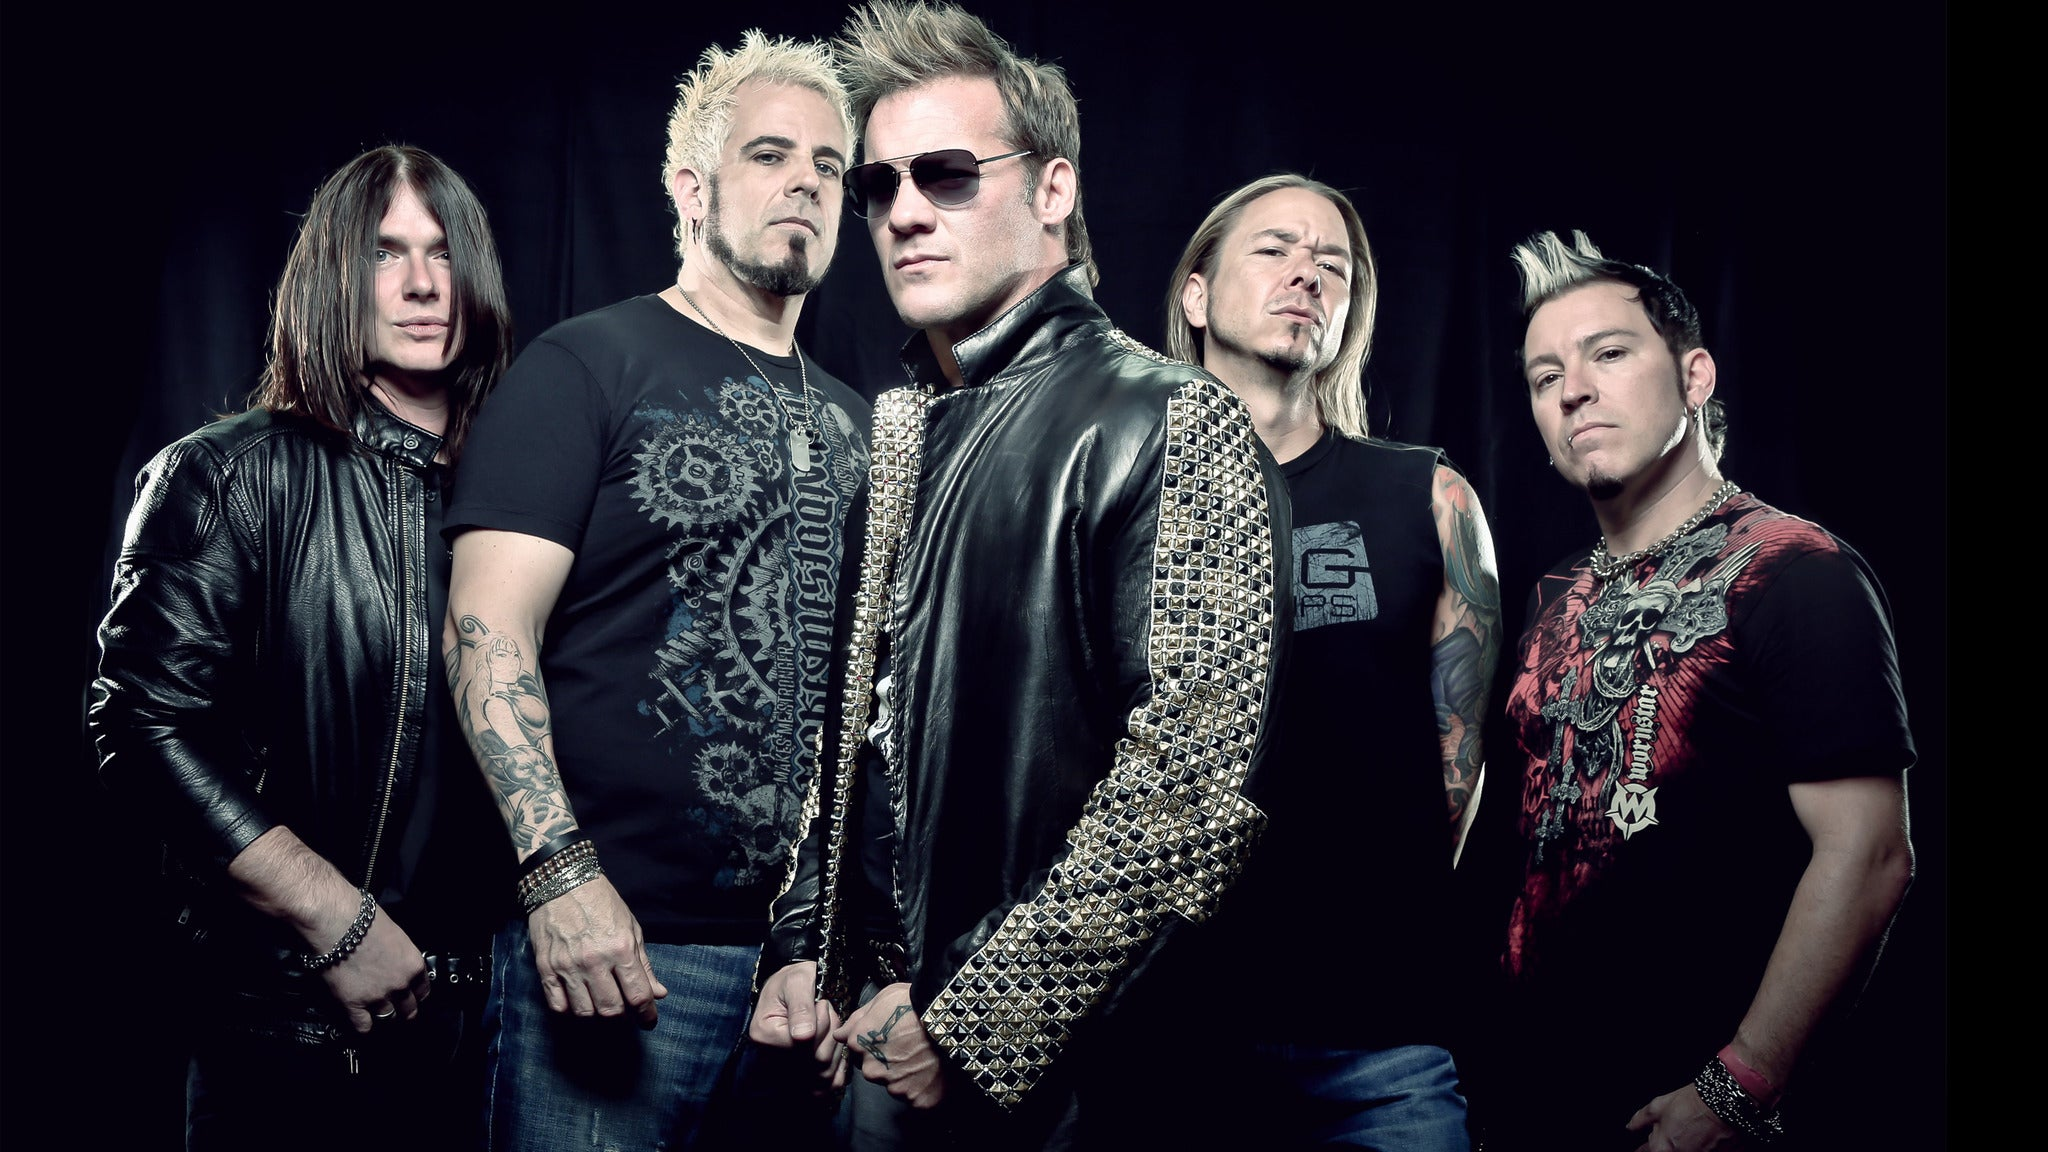 Fozzy w/ special guest Skindred at The Orpheum